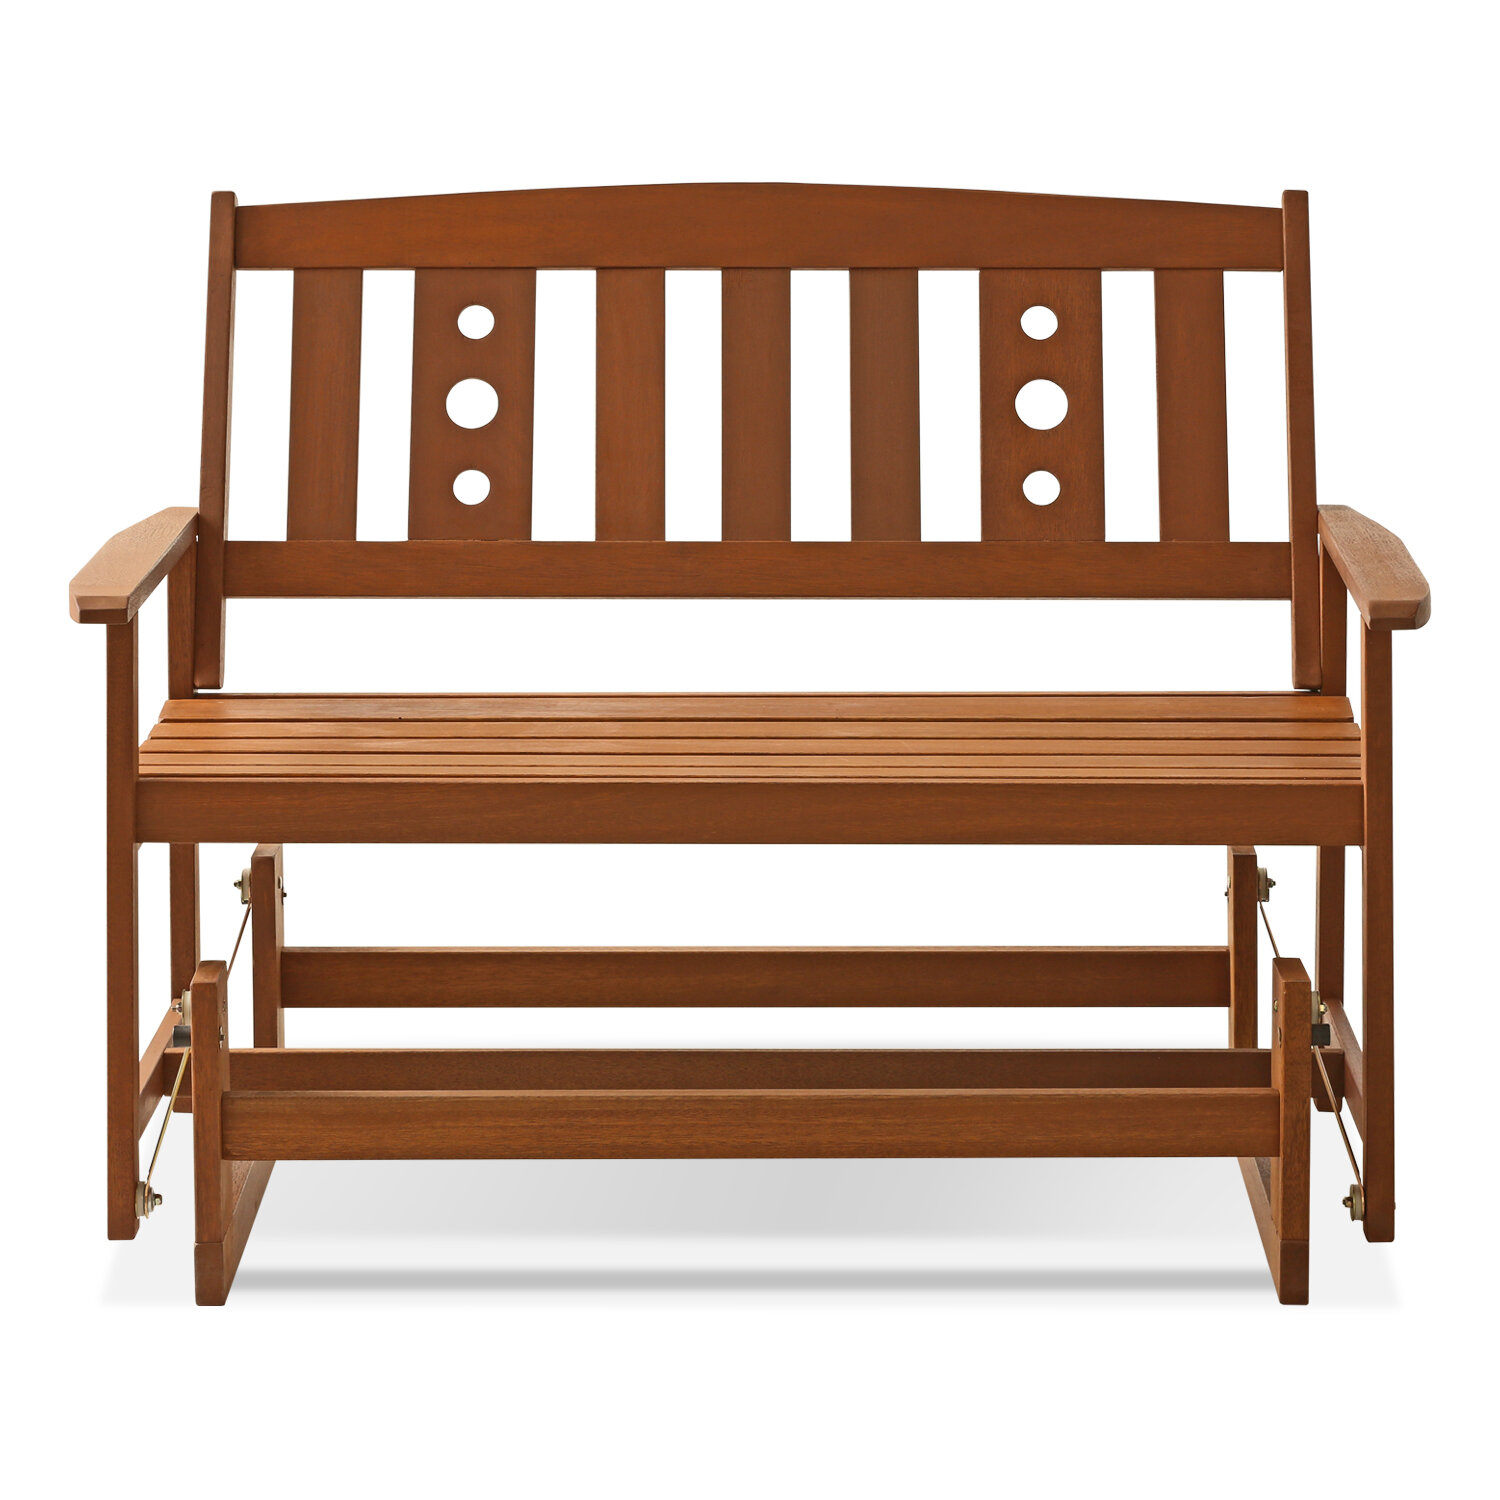 Langley Street Arianna Glider Bench & Reviews | Wayfair Pertaining To Speckled Glider Benches (View 9 of 25)